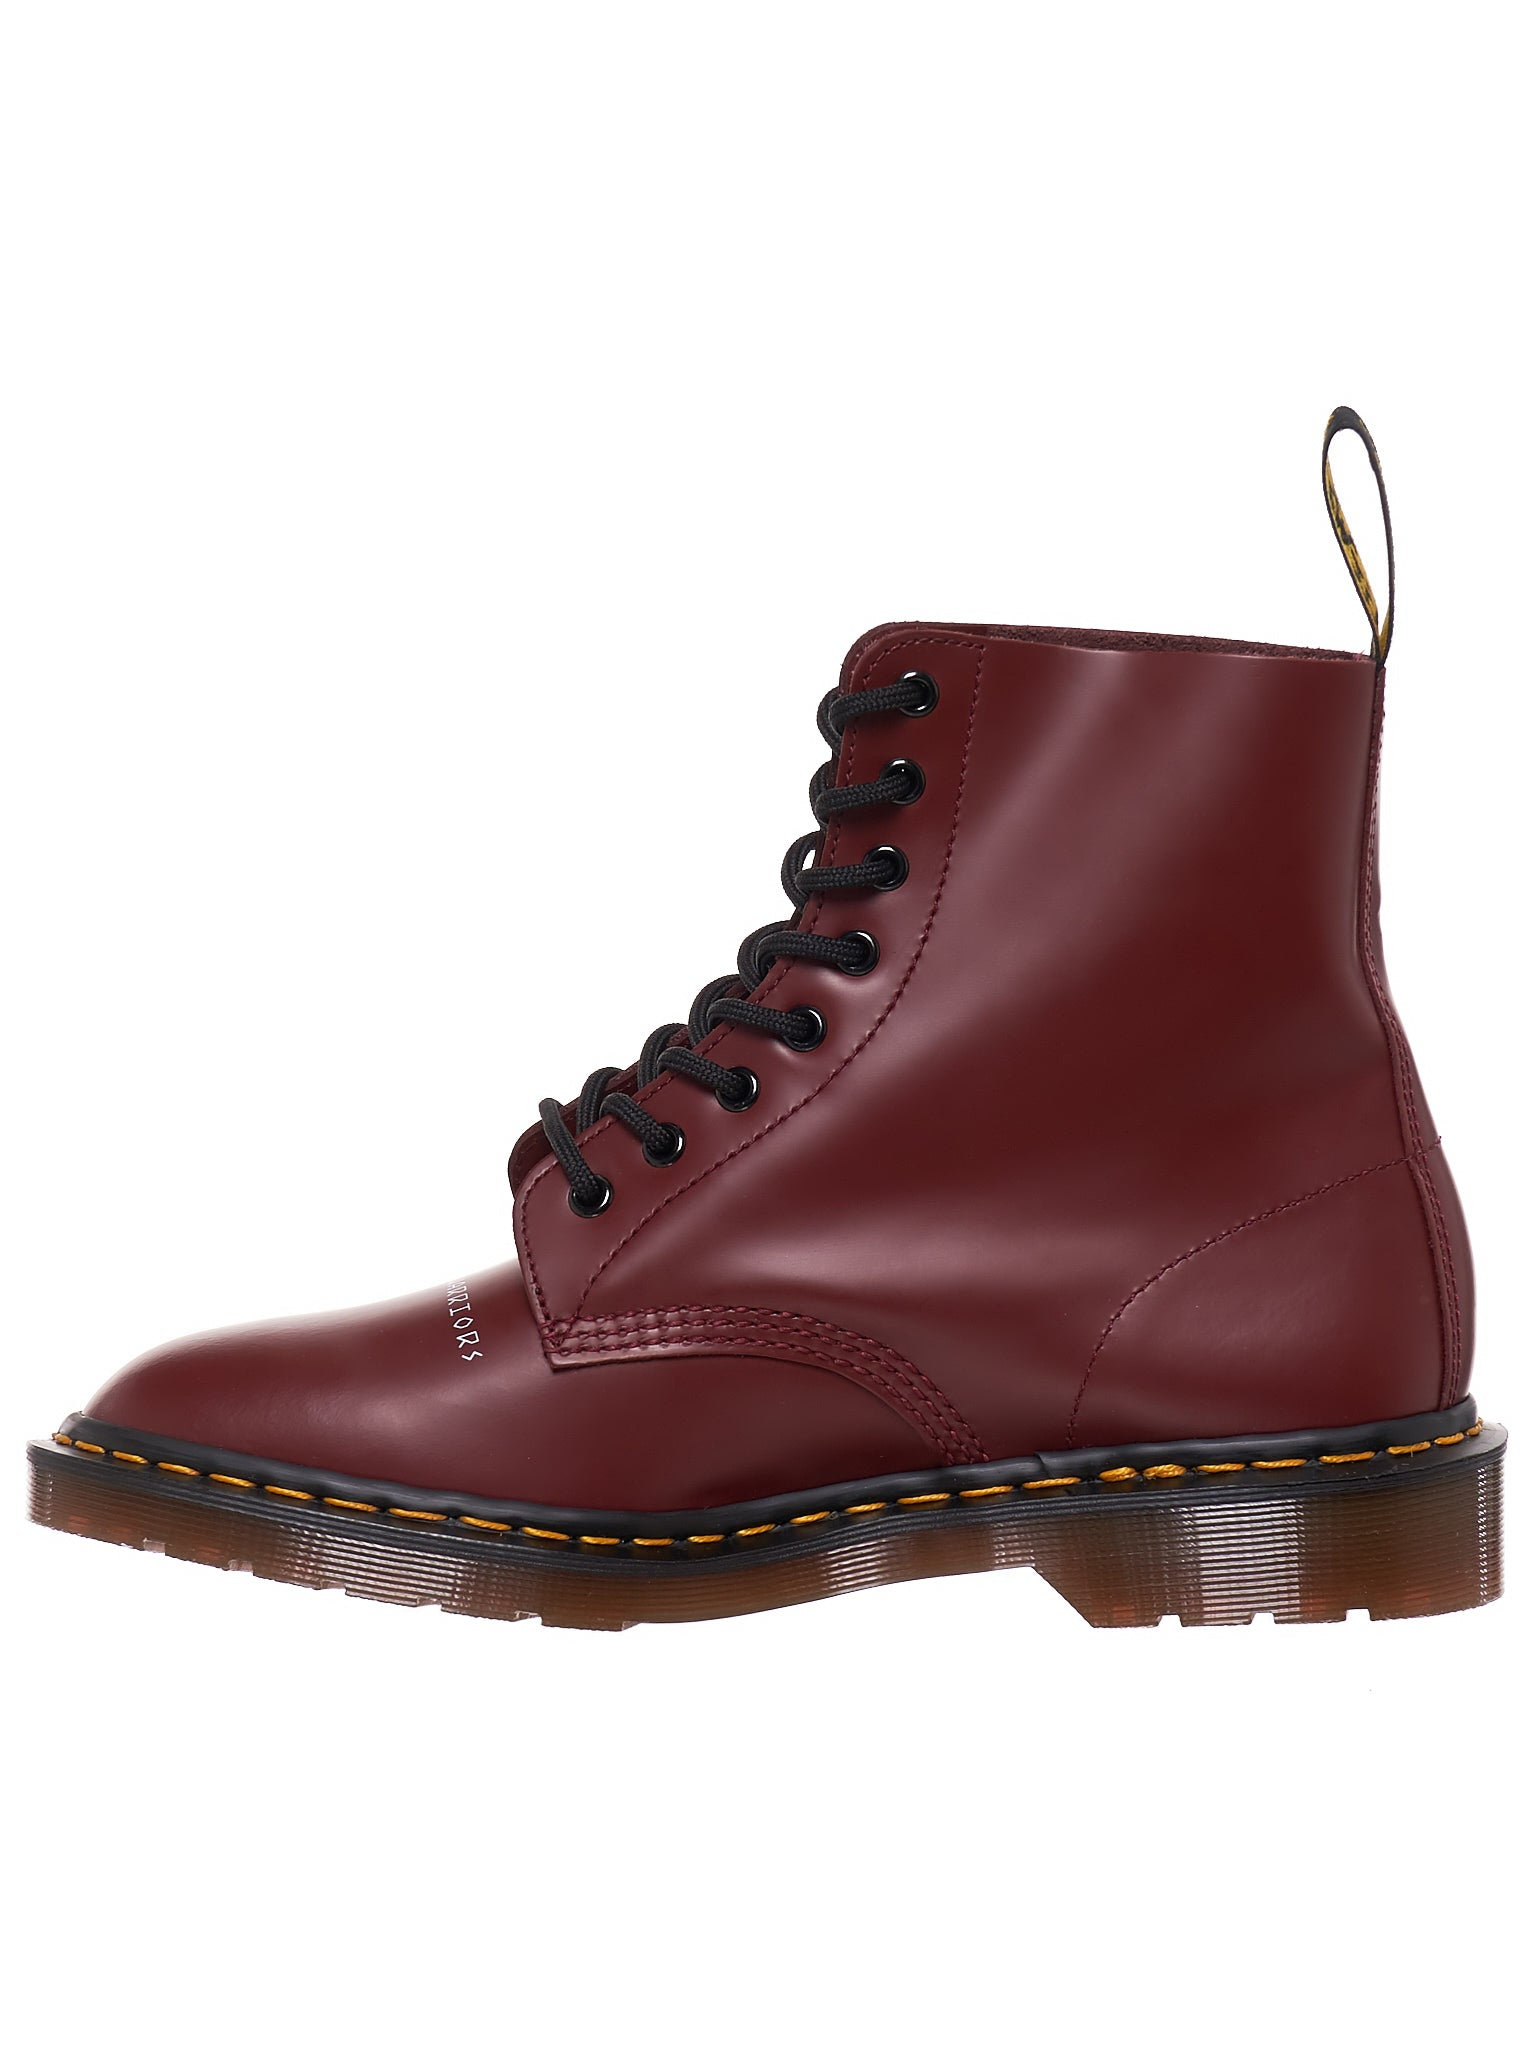 Undercover x Dr. Martens Boot - Hlorenzo Back